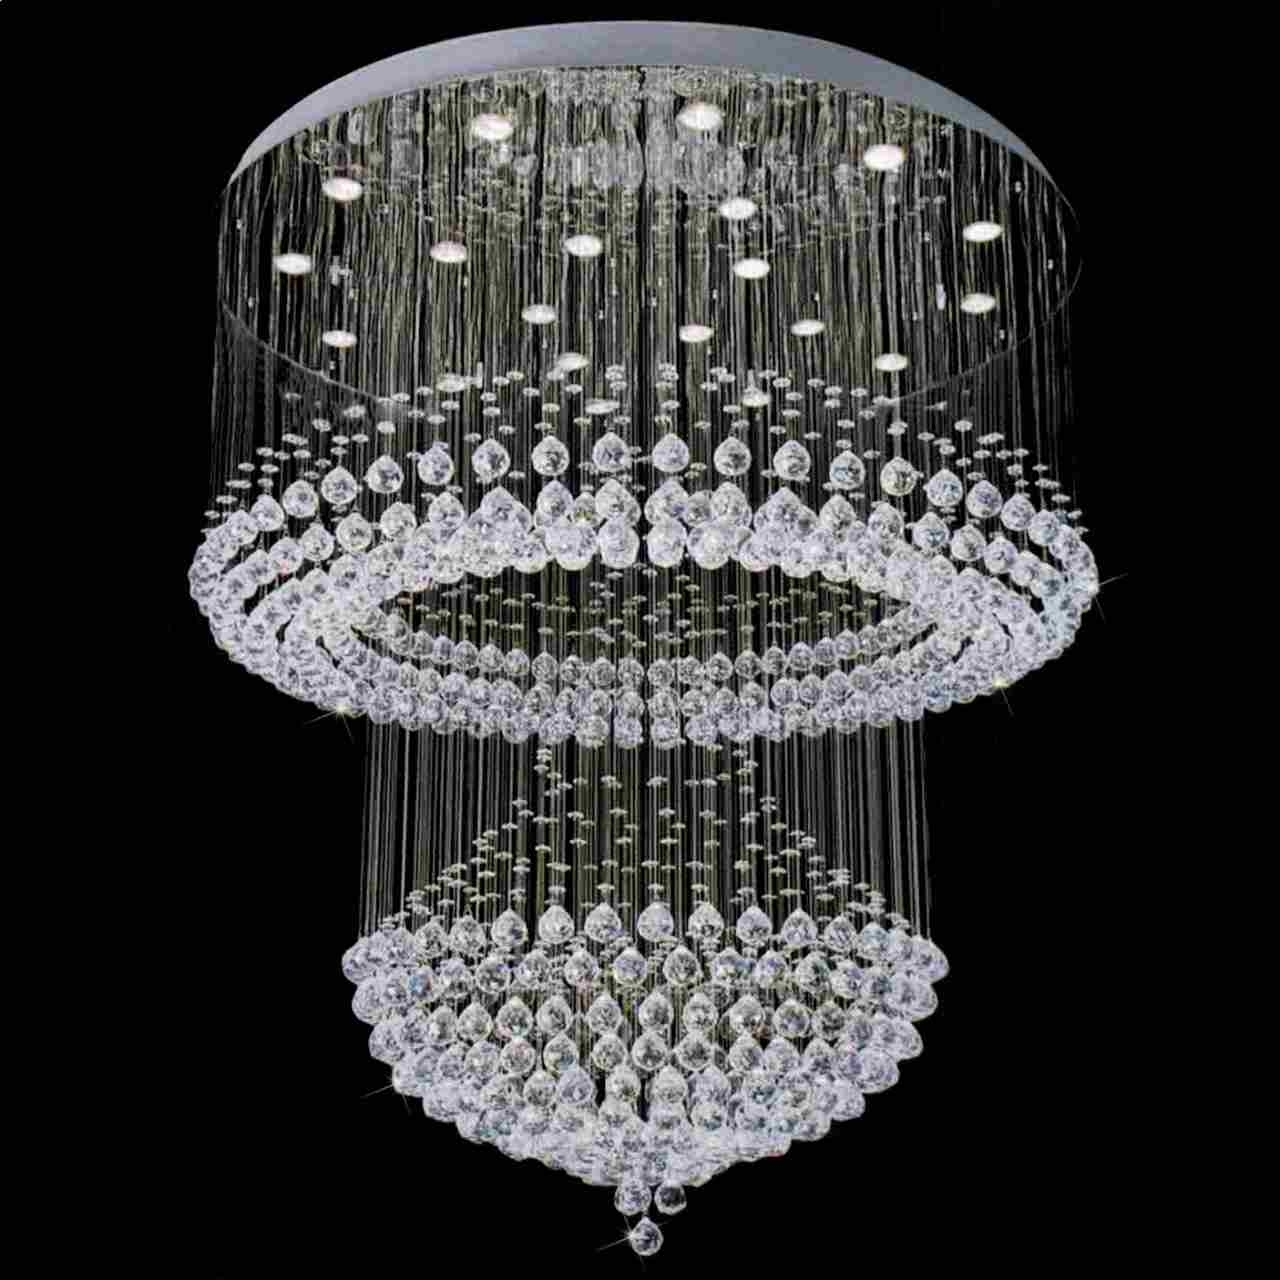 Chandelier Lights Pertaining To Well Known Brizzo Lighting Stores (View 6 of 15)